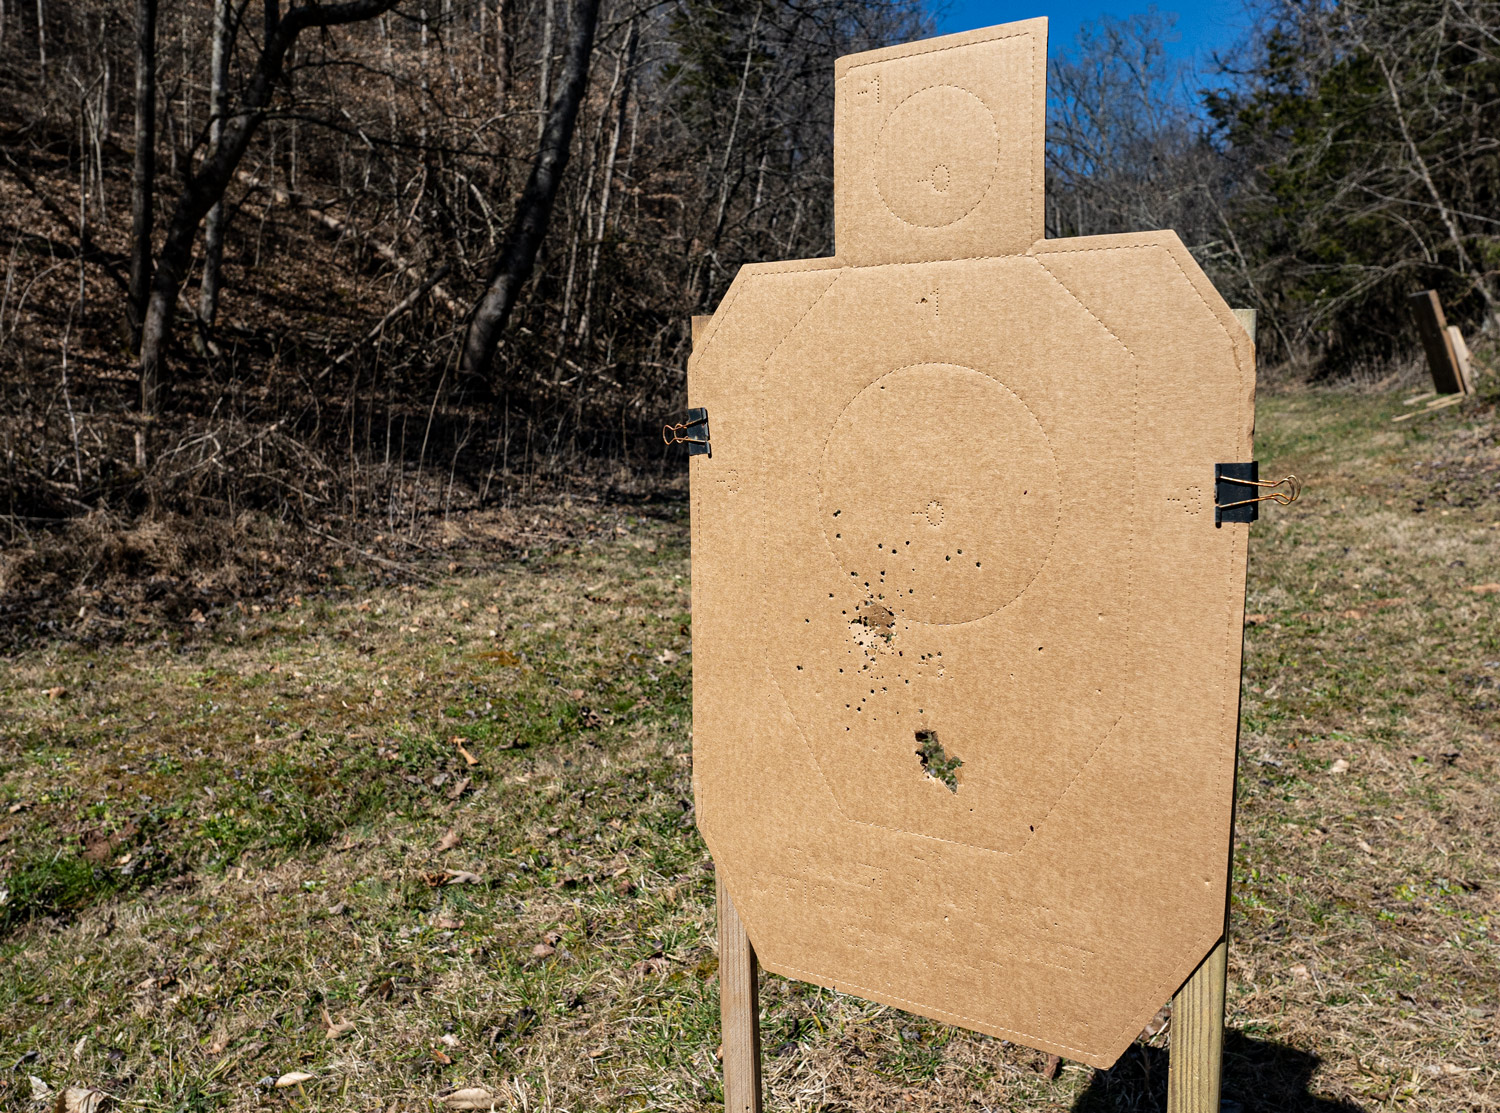 Pattern on a target at a shooting range